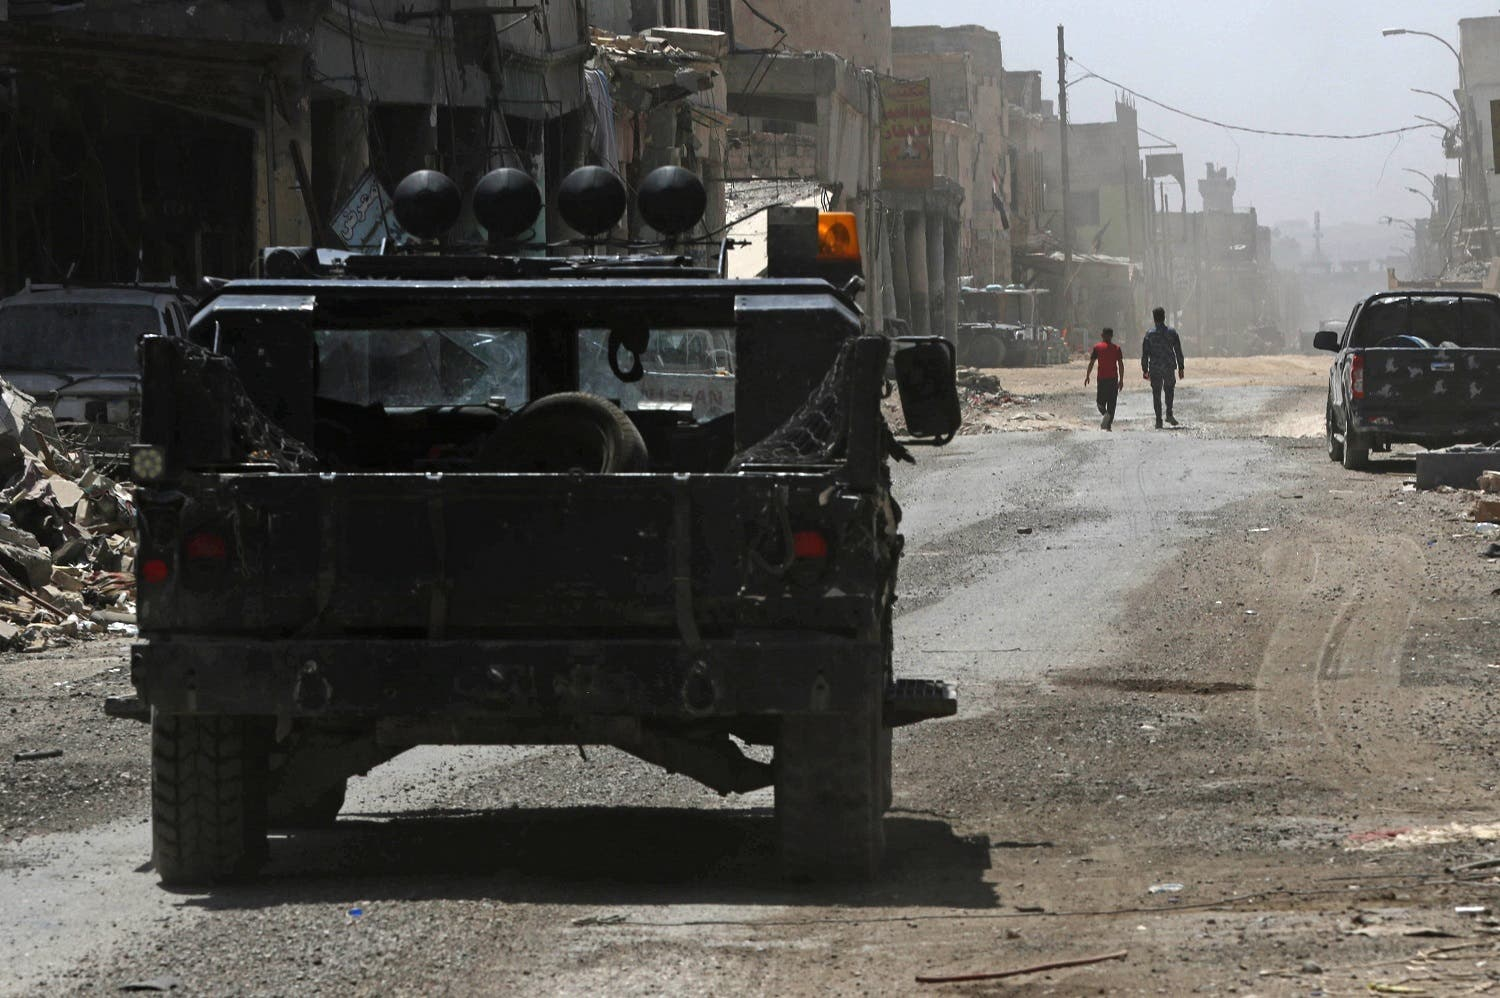 Iraqi forces patrol the old city in western Mosul on July 30, 2017. AFP